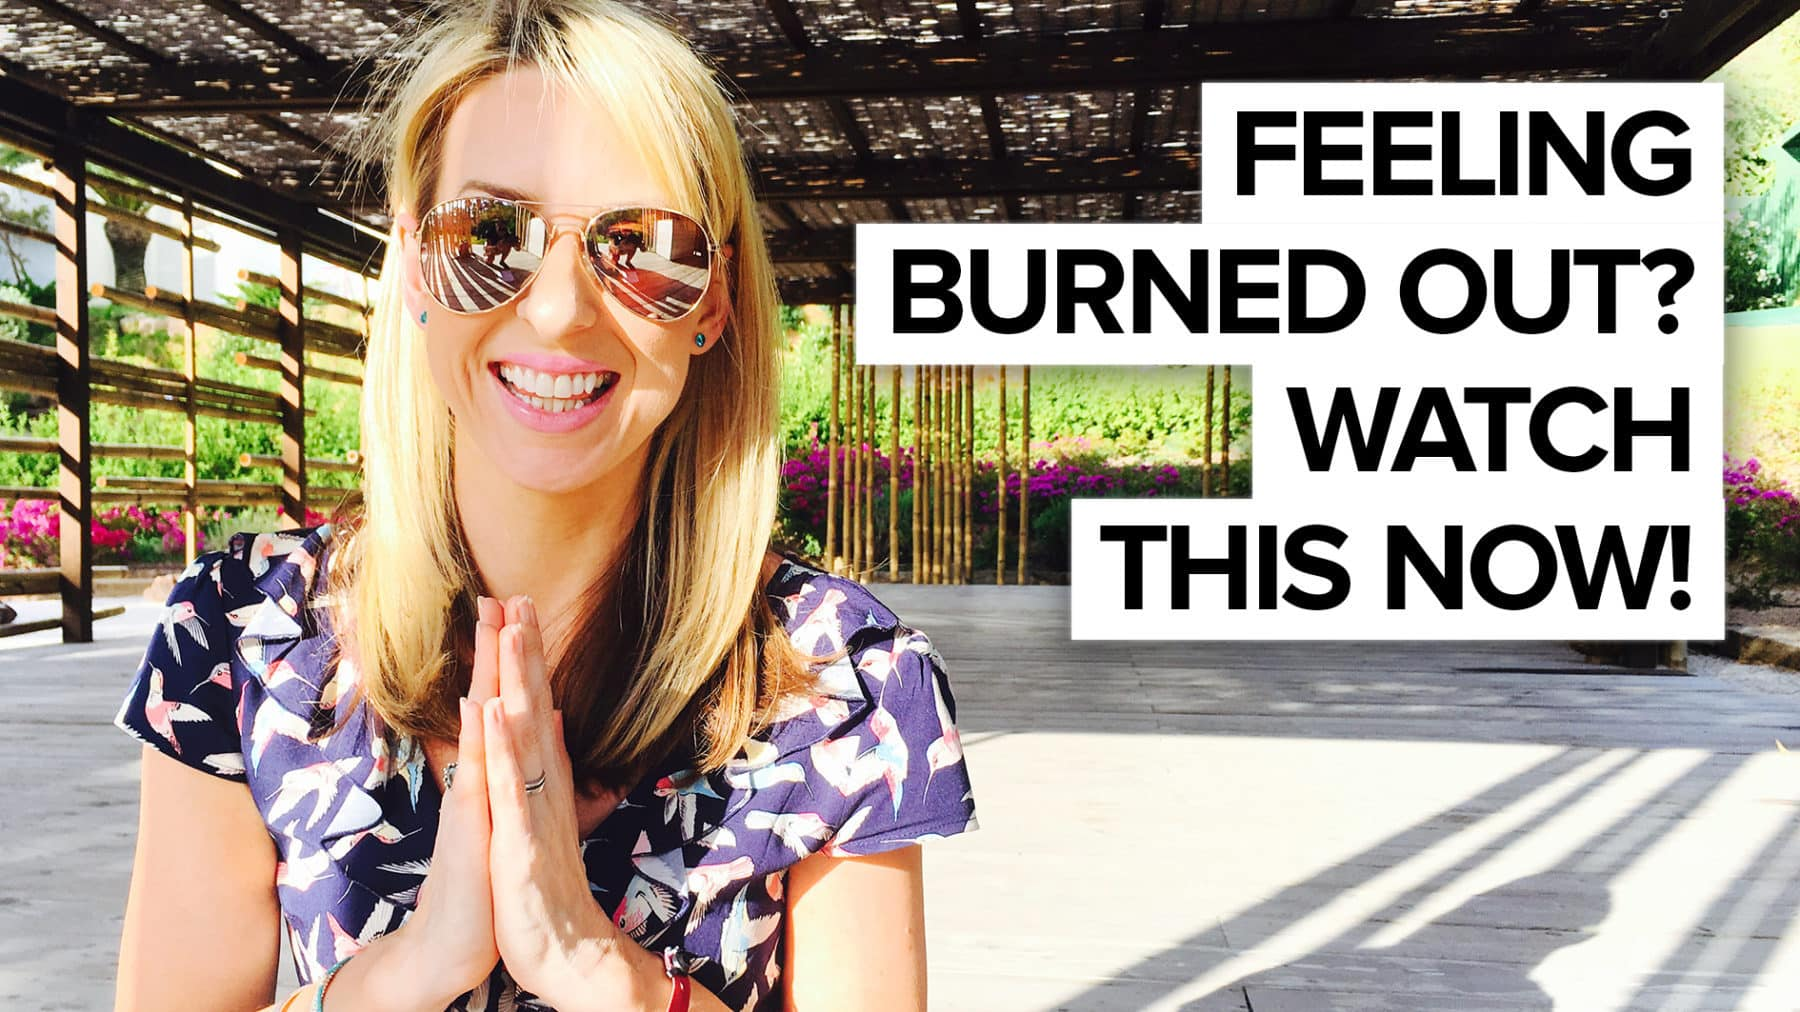 Feeling burnt out? Watch this now!